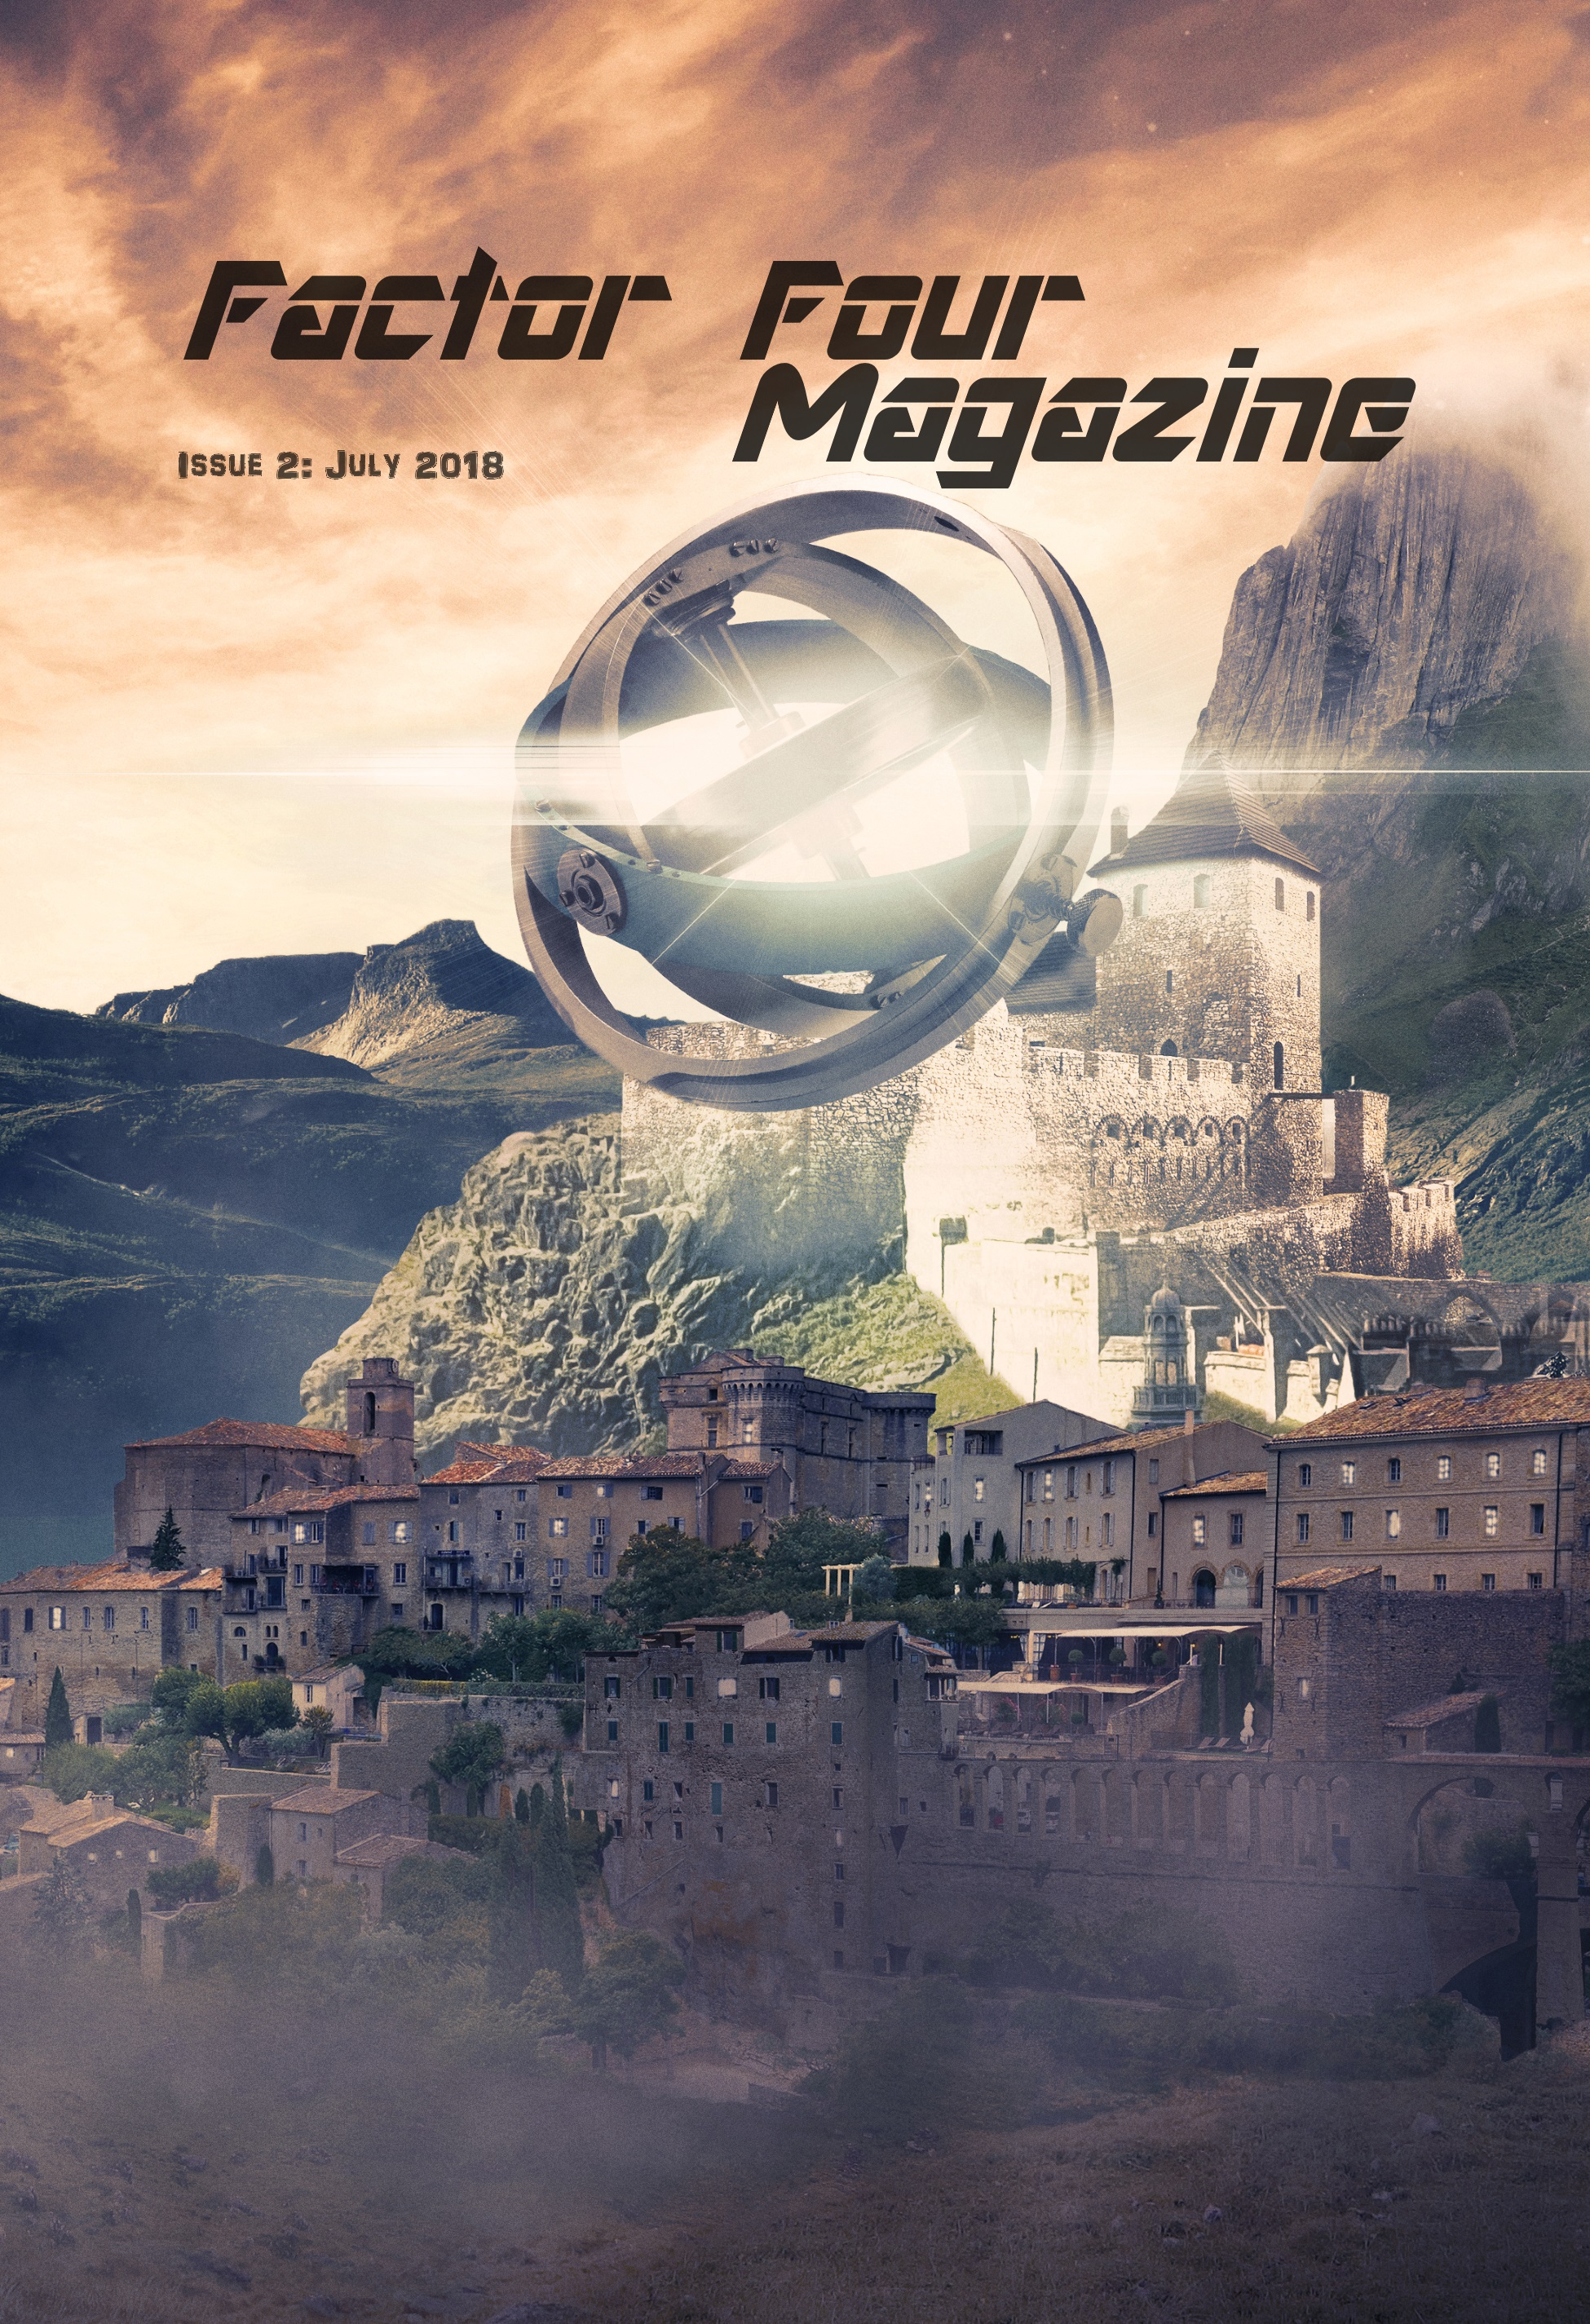 ISSUE 2: July 2018